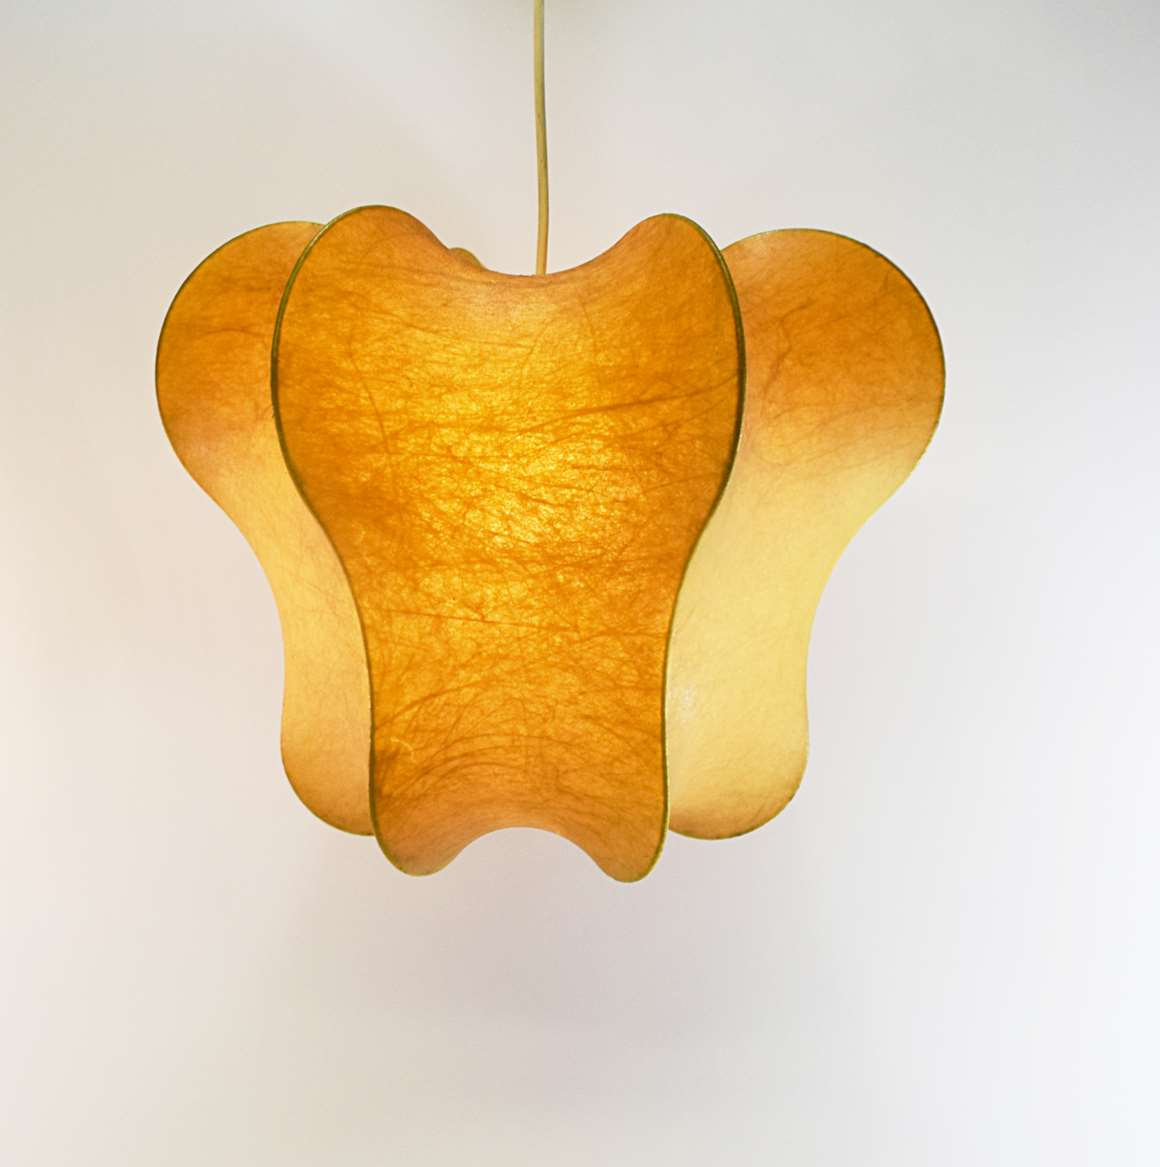 Goldkant Leuchten Cocoon pendant lamp sprayed plastic lampshade metal wire frame 1960s 1970s Germany E27 socket